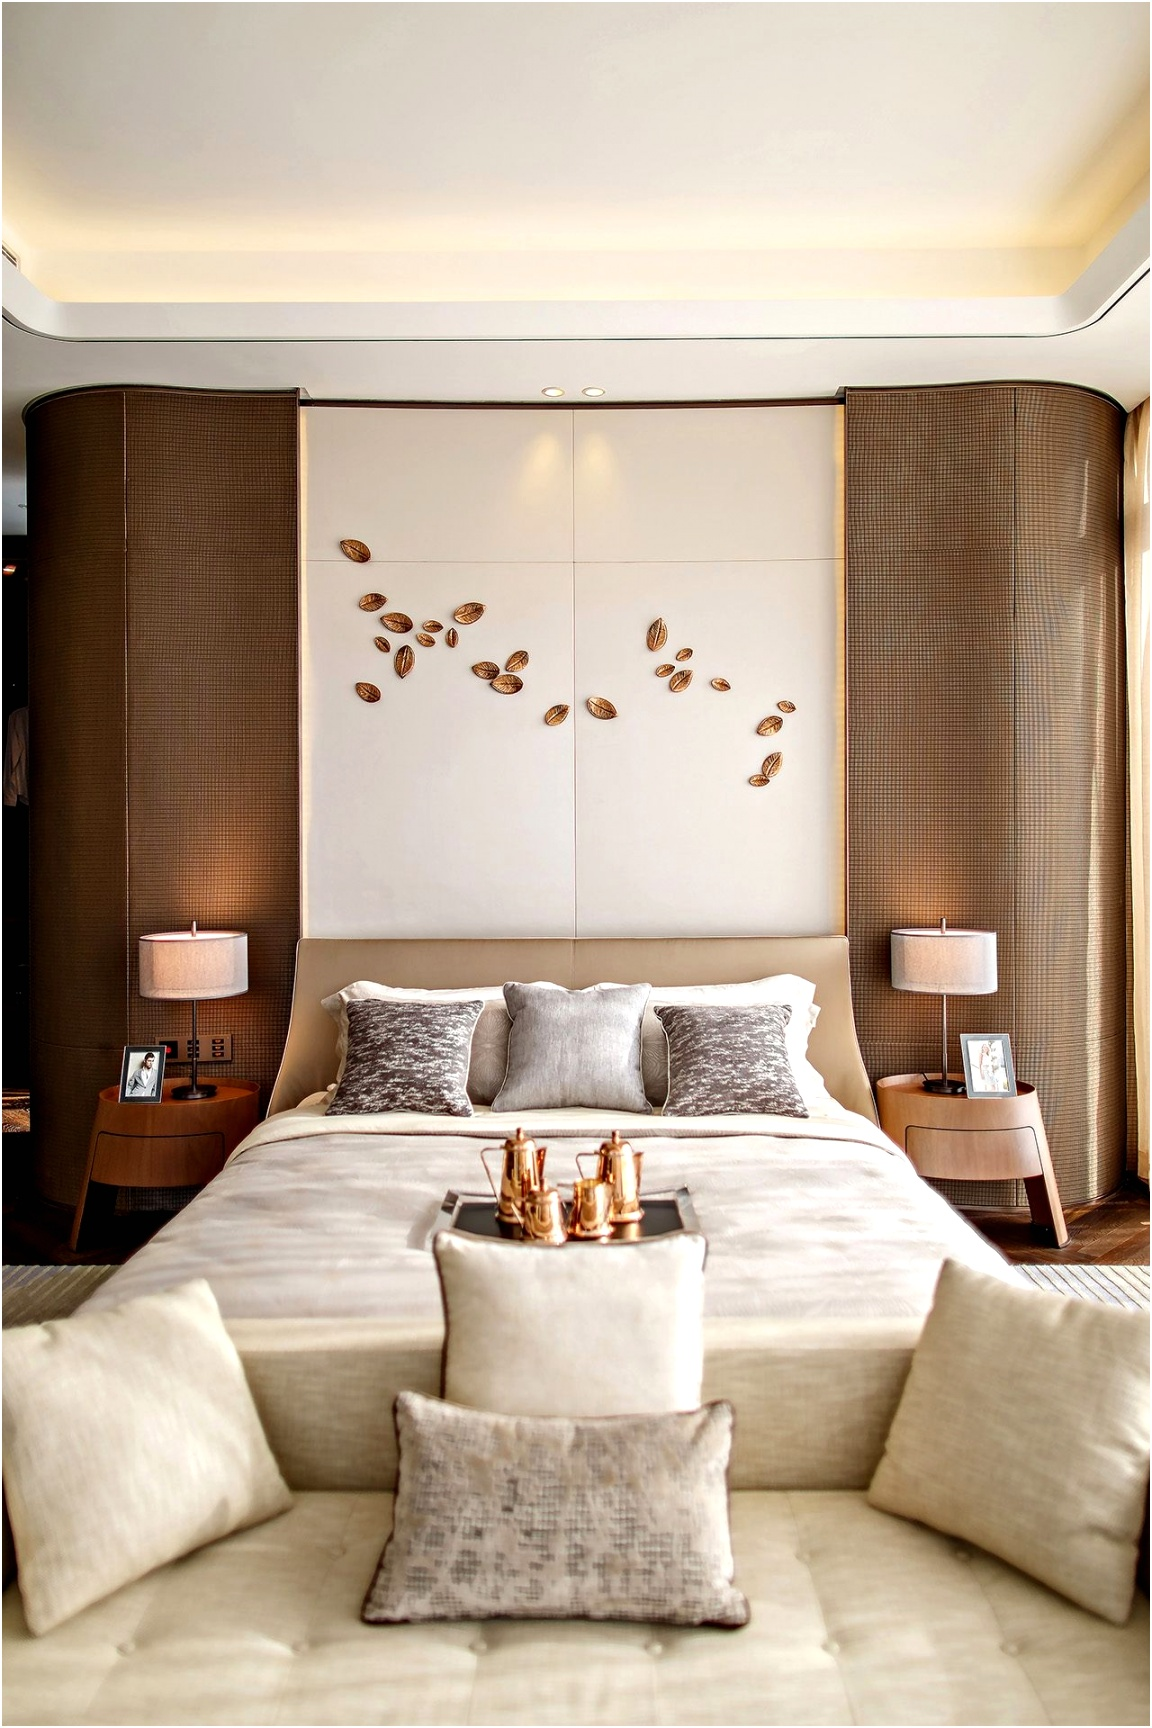 2019 kitchen ideas traditional master bedroom bed in bag master bedroom decorating ideas panelling hot home fashion trends